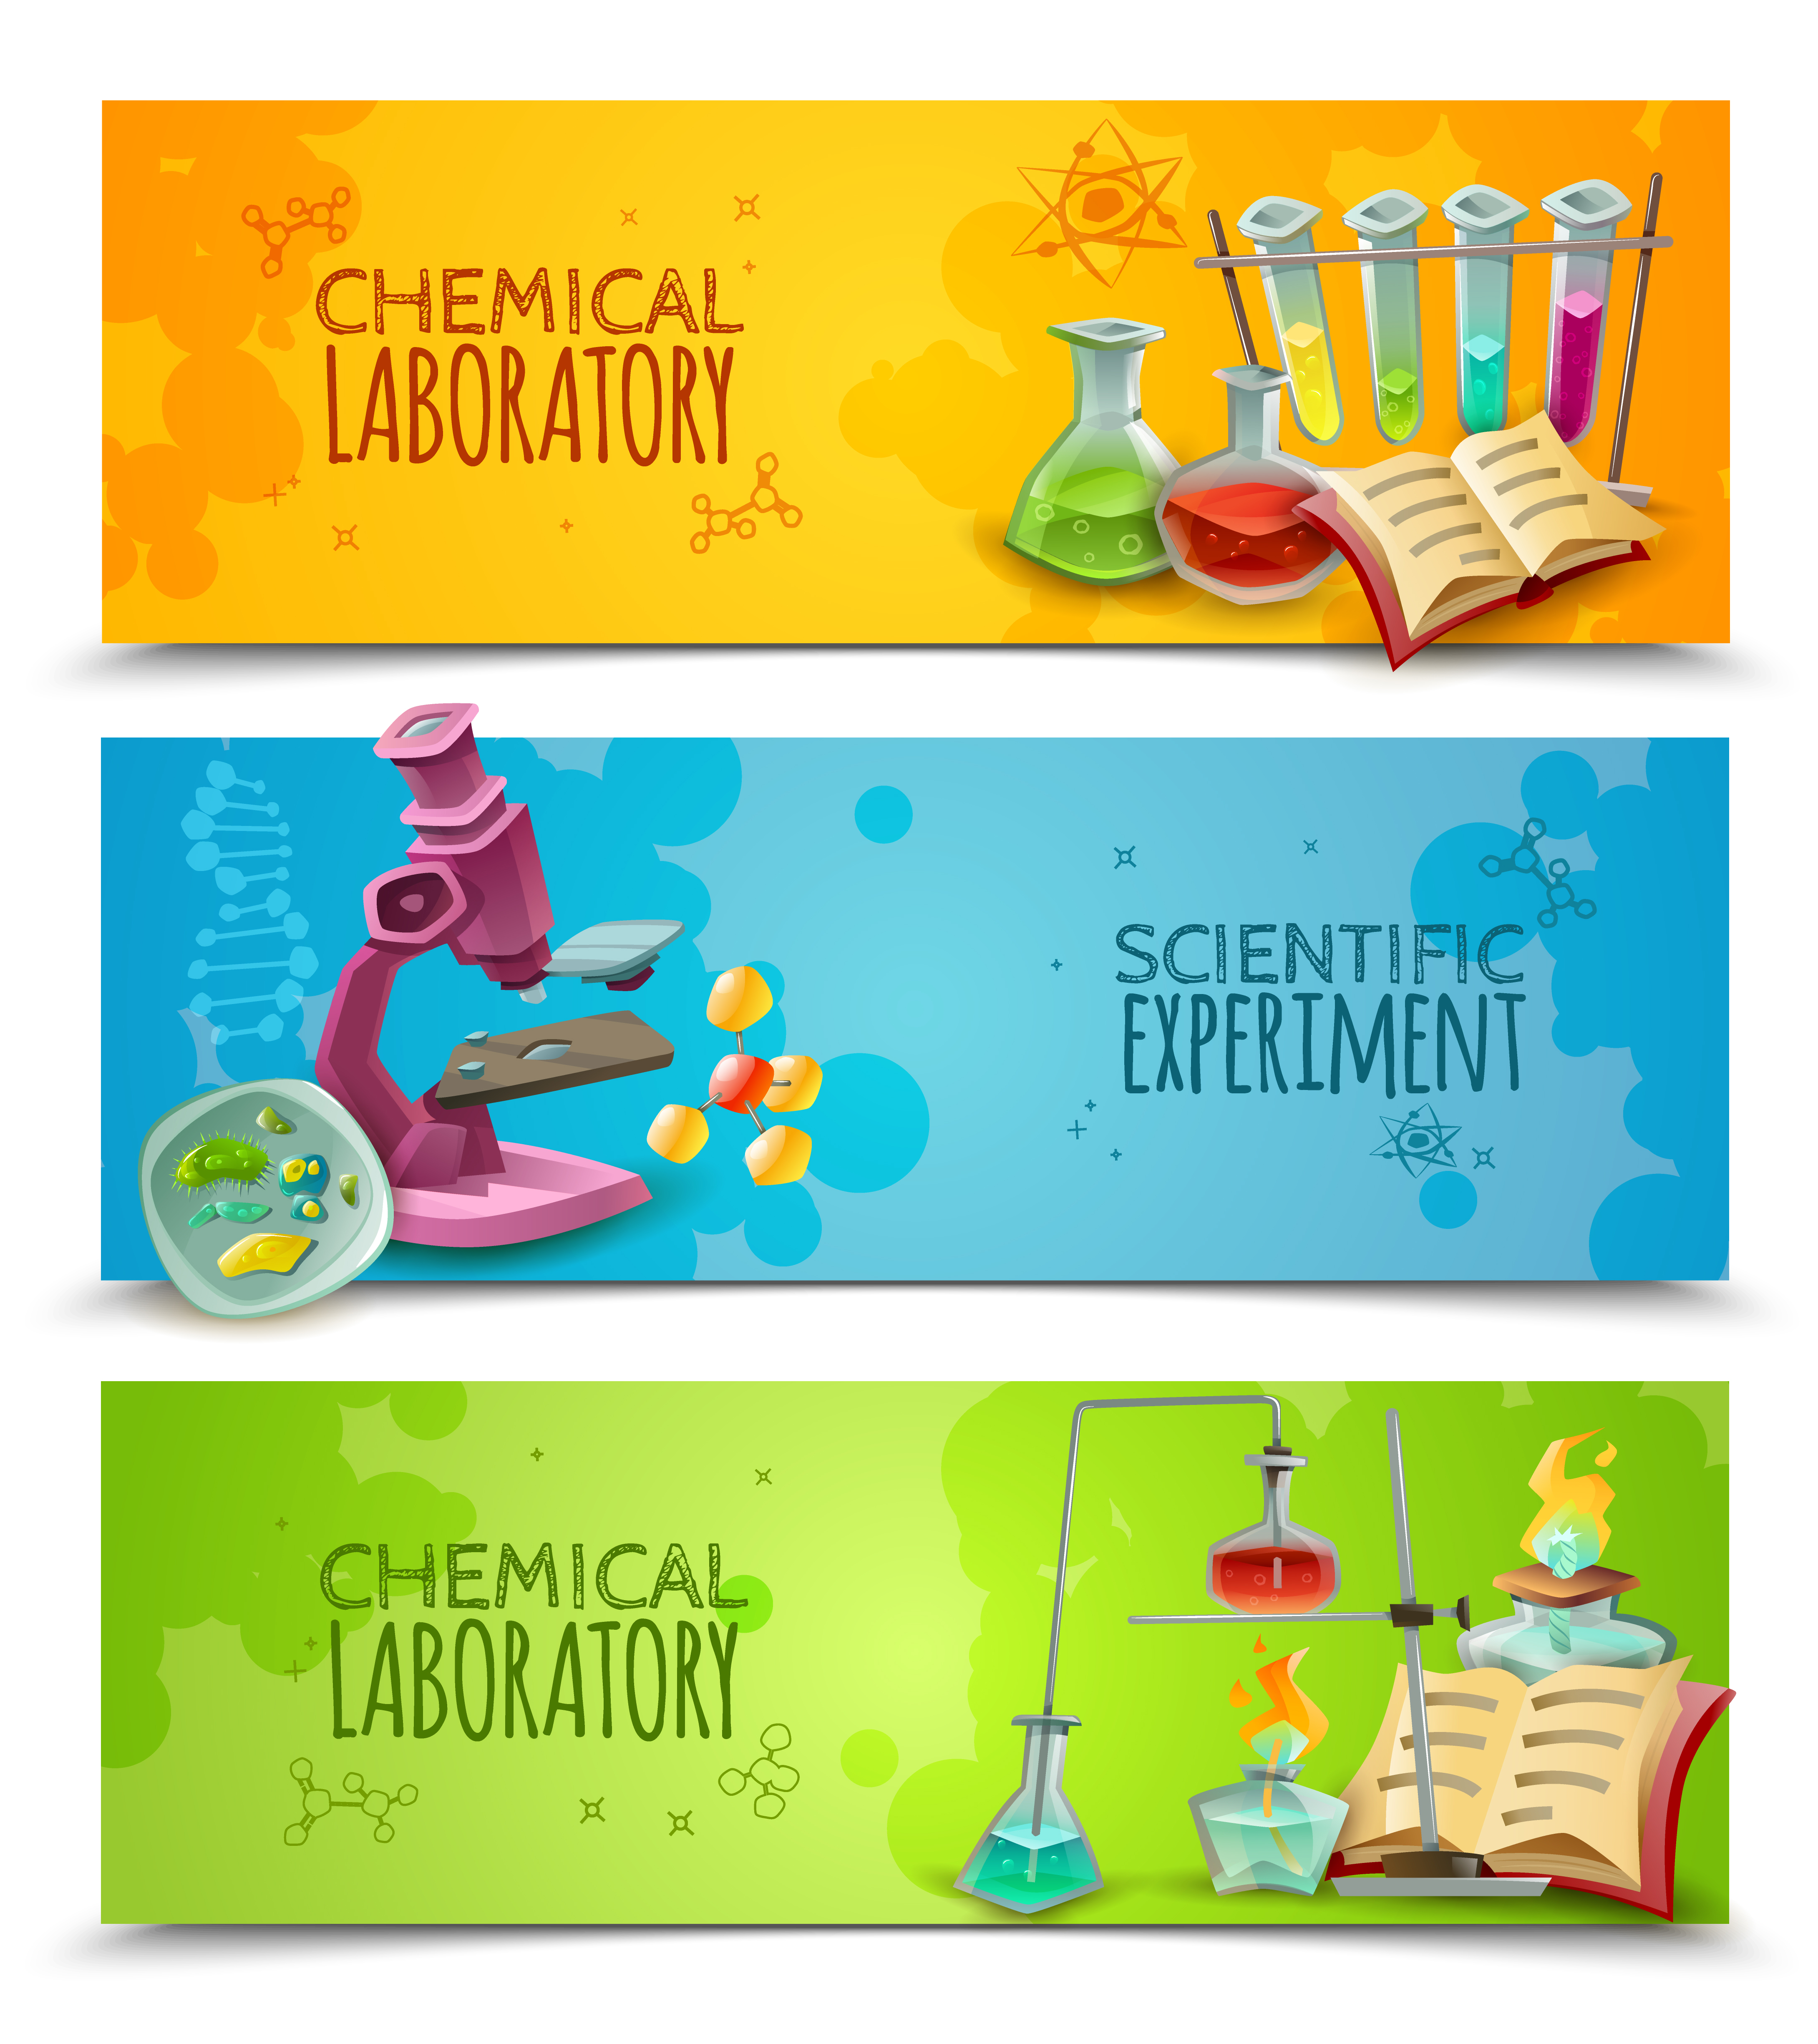 Science Laboratory Background Design: Scientific Chemical Laboratory Flat Banners Set